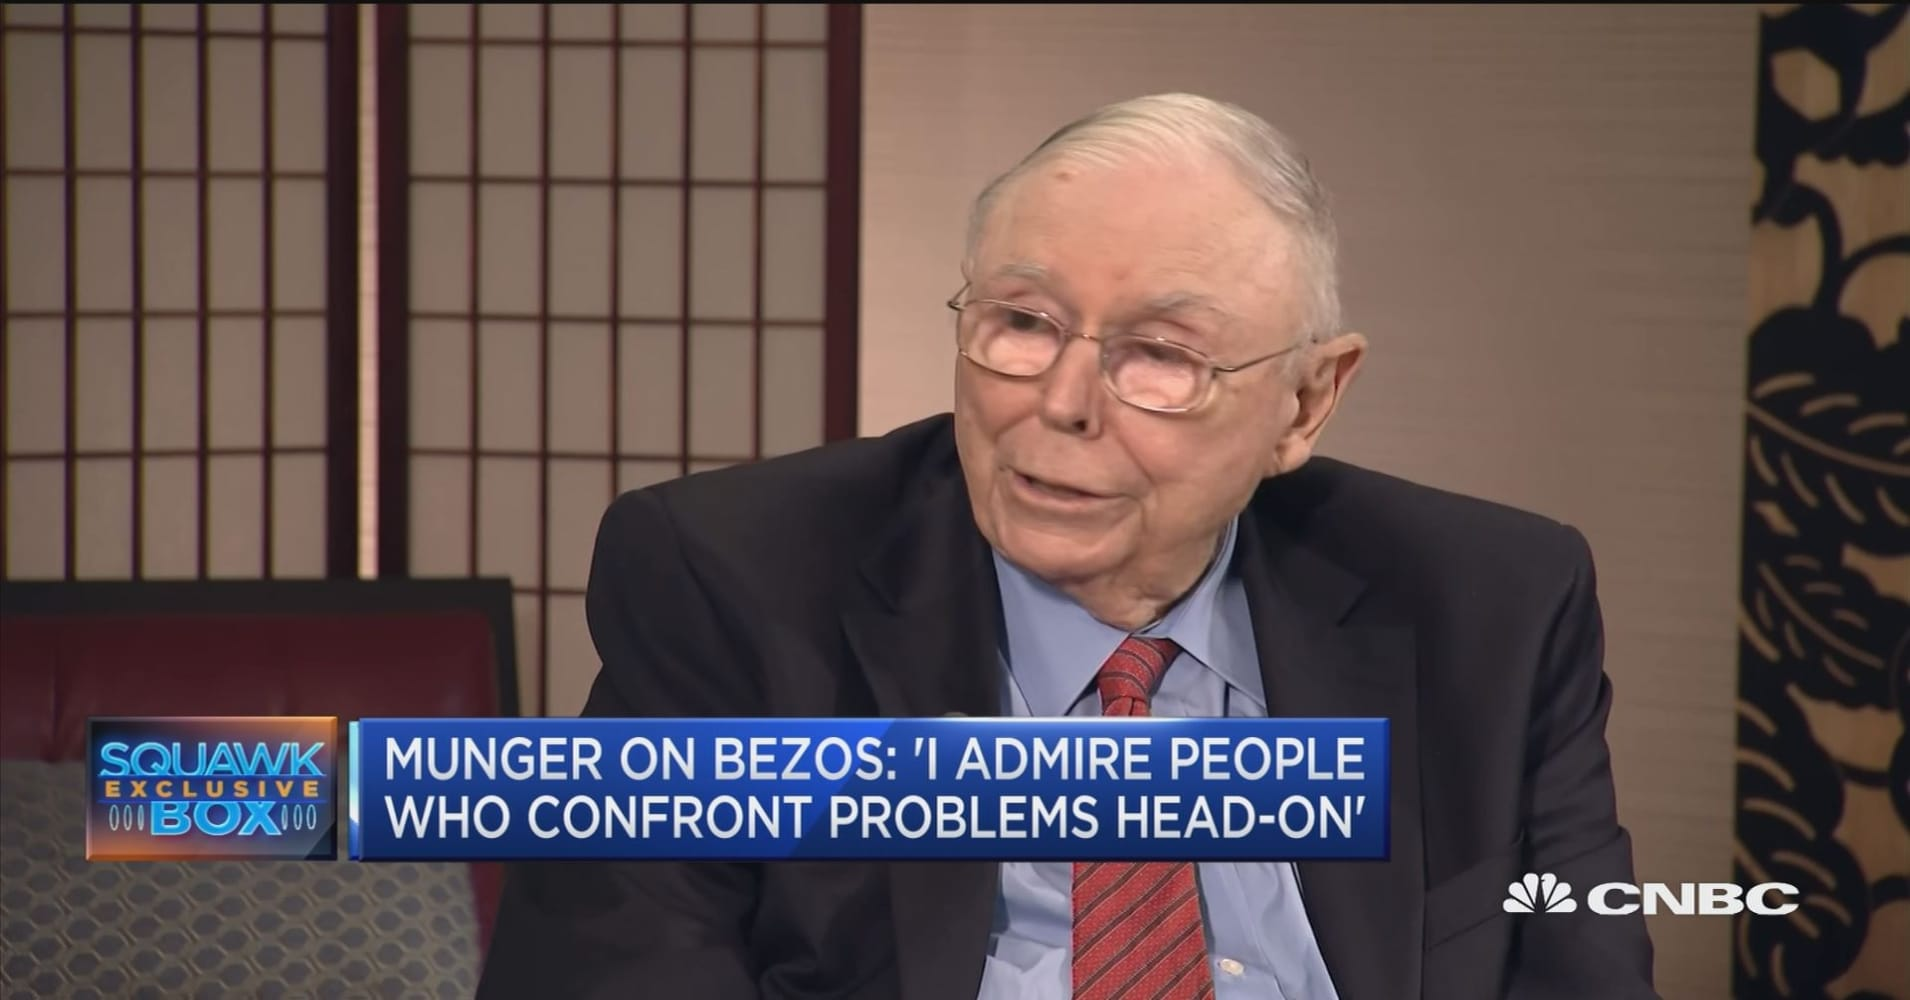 Charlie Munger on the national debt and Jeff Bezo's blackmail allegations